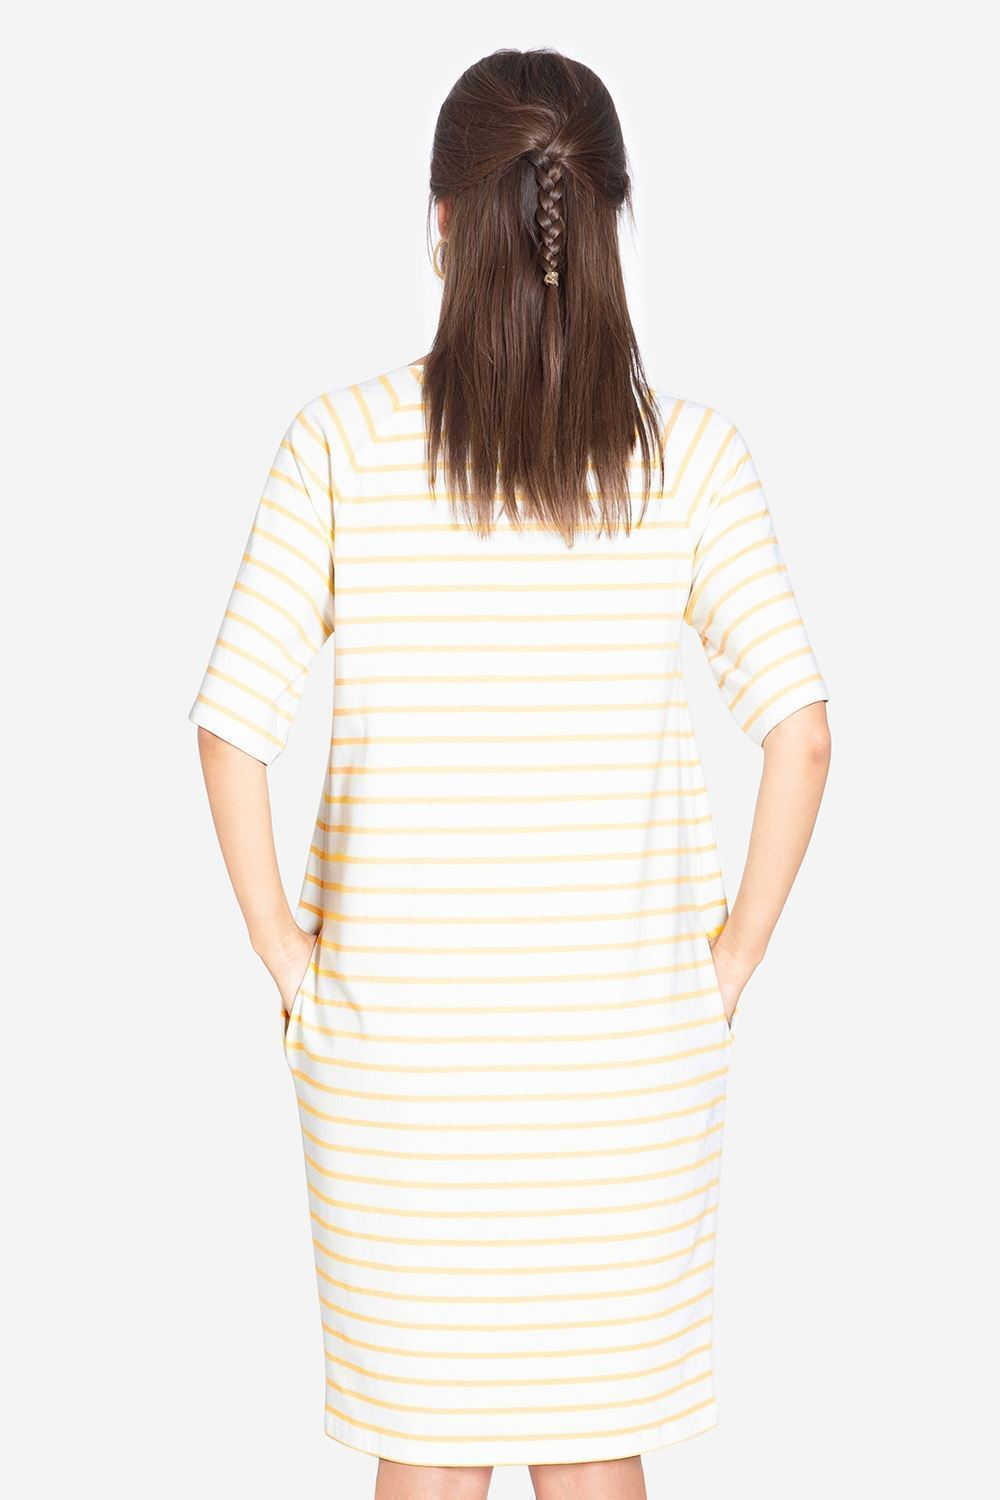 Loose yellow stribed breastfeeding dress -  Seen from behind